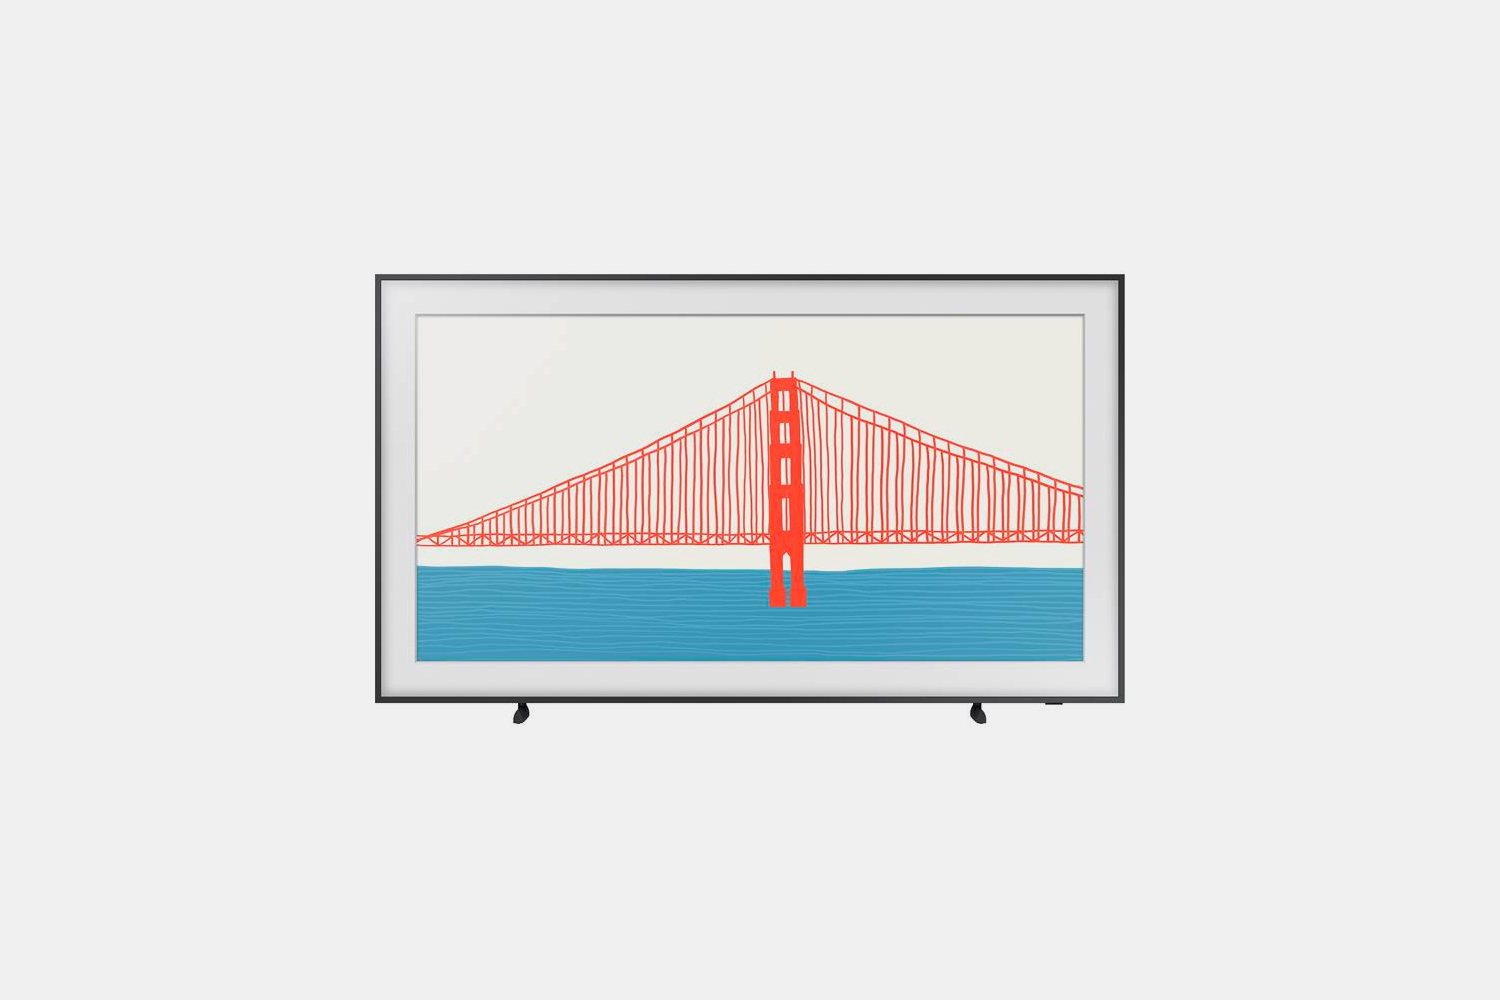 Samsung The Frame, 75-inches